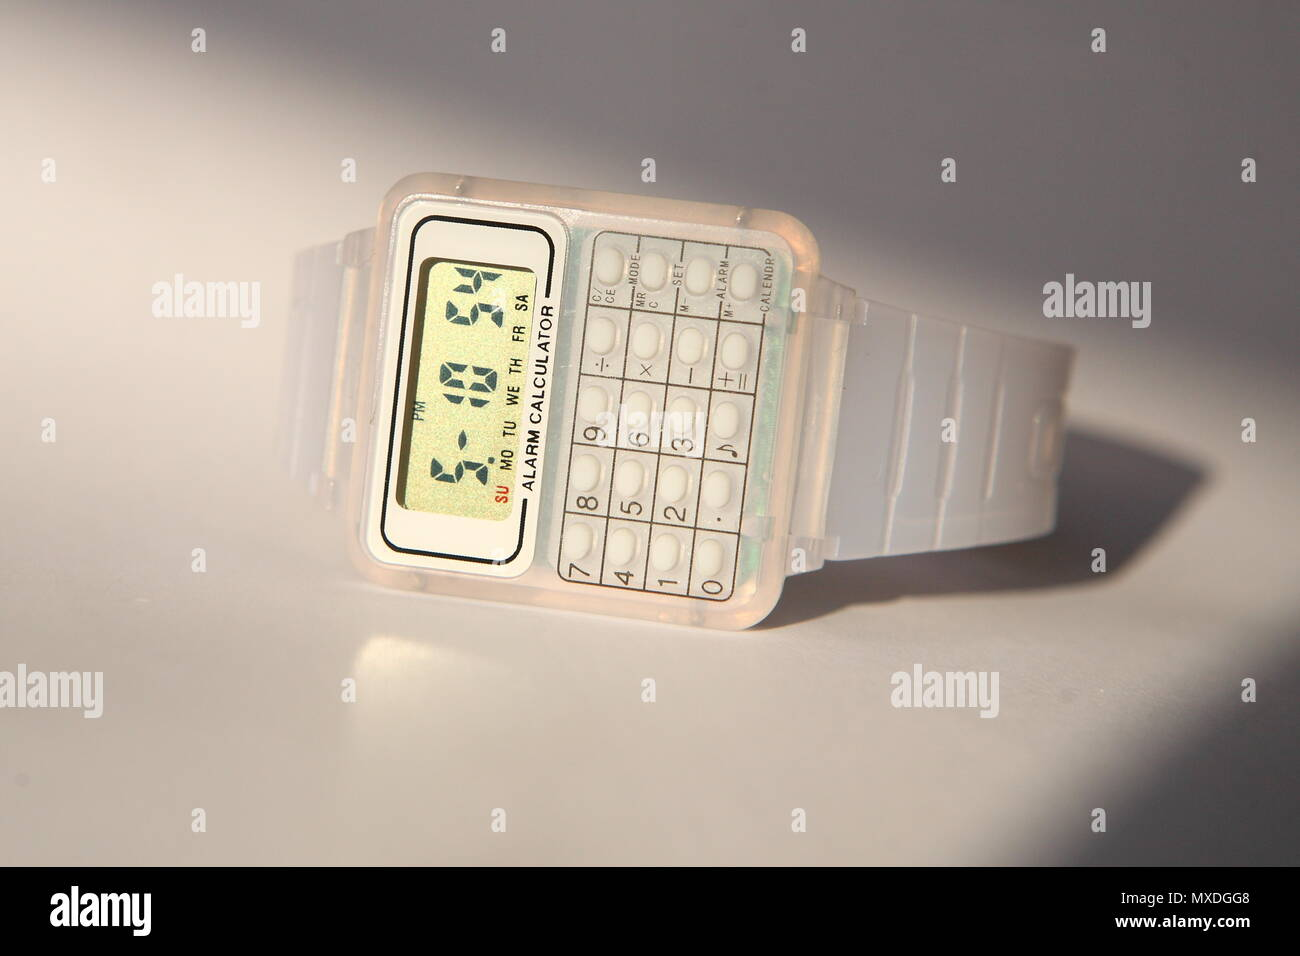 Calculator Watch Stock Photos Images Alamy Circuitry Of An Electronic Royalty Free Photography A Retro Style Digital With In Clear Plastic Strap Image